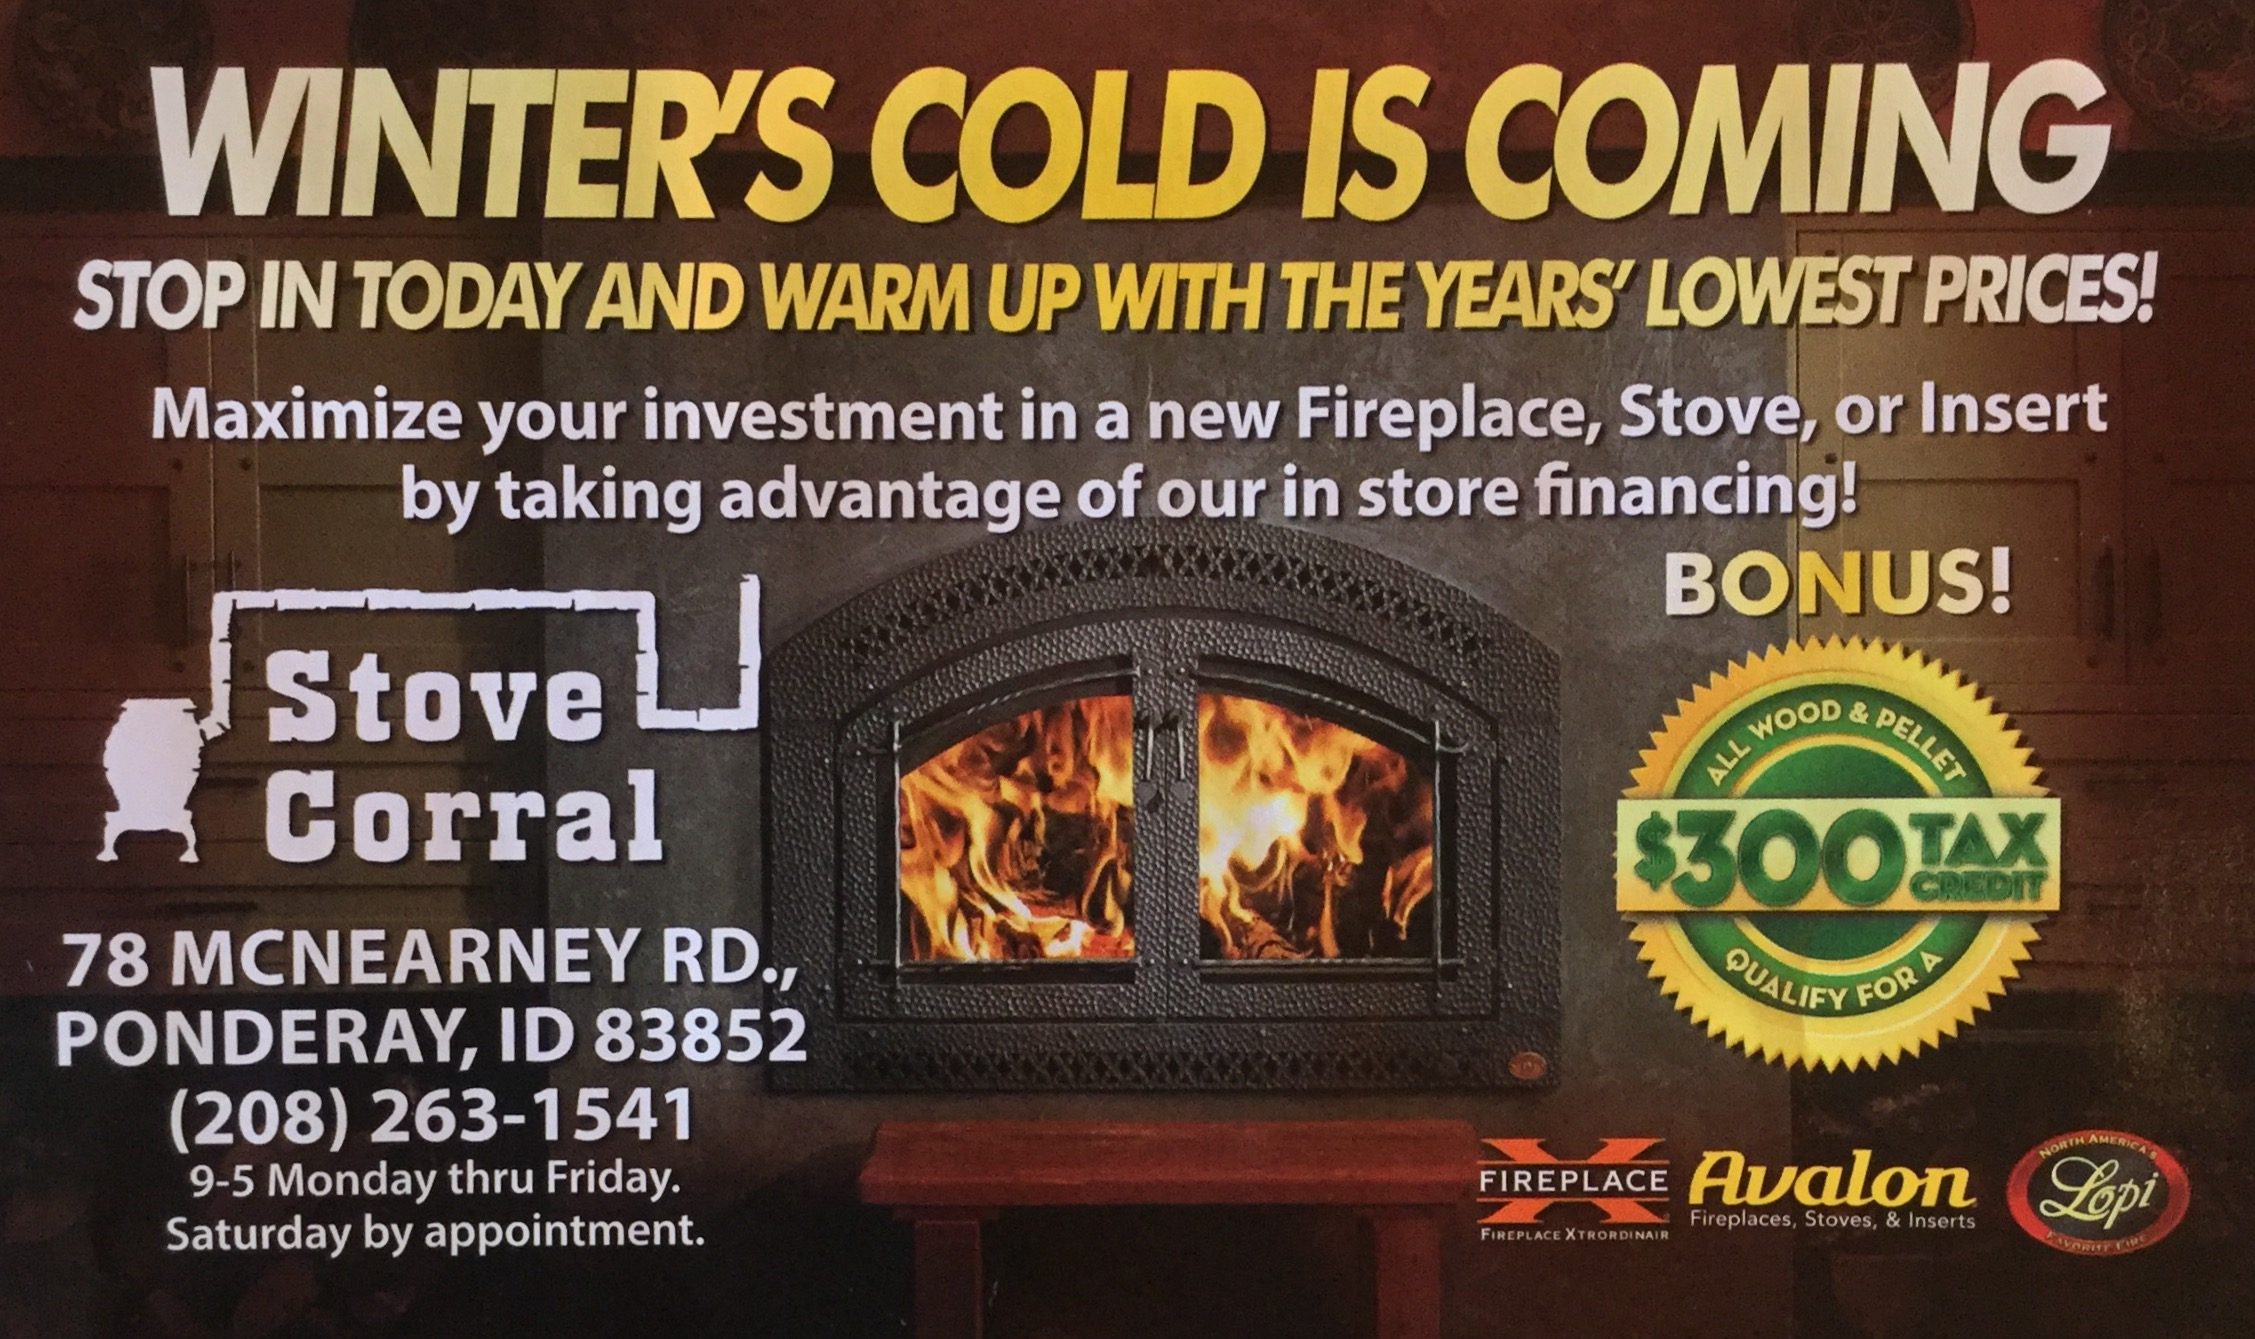 Avalon Gas Fireplace Inserts Stove Corral Sandpoint Idaho Dealer Blaze King Lopi Fpx Avalon